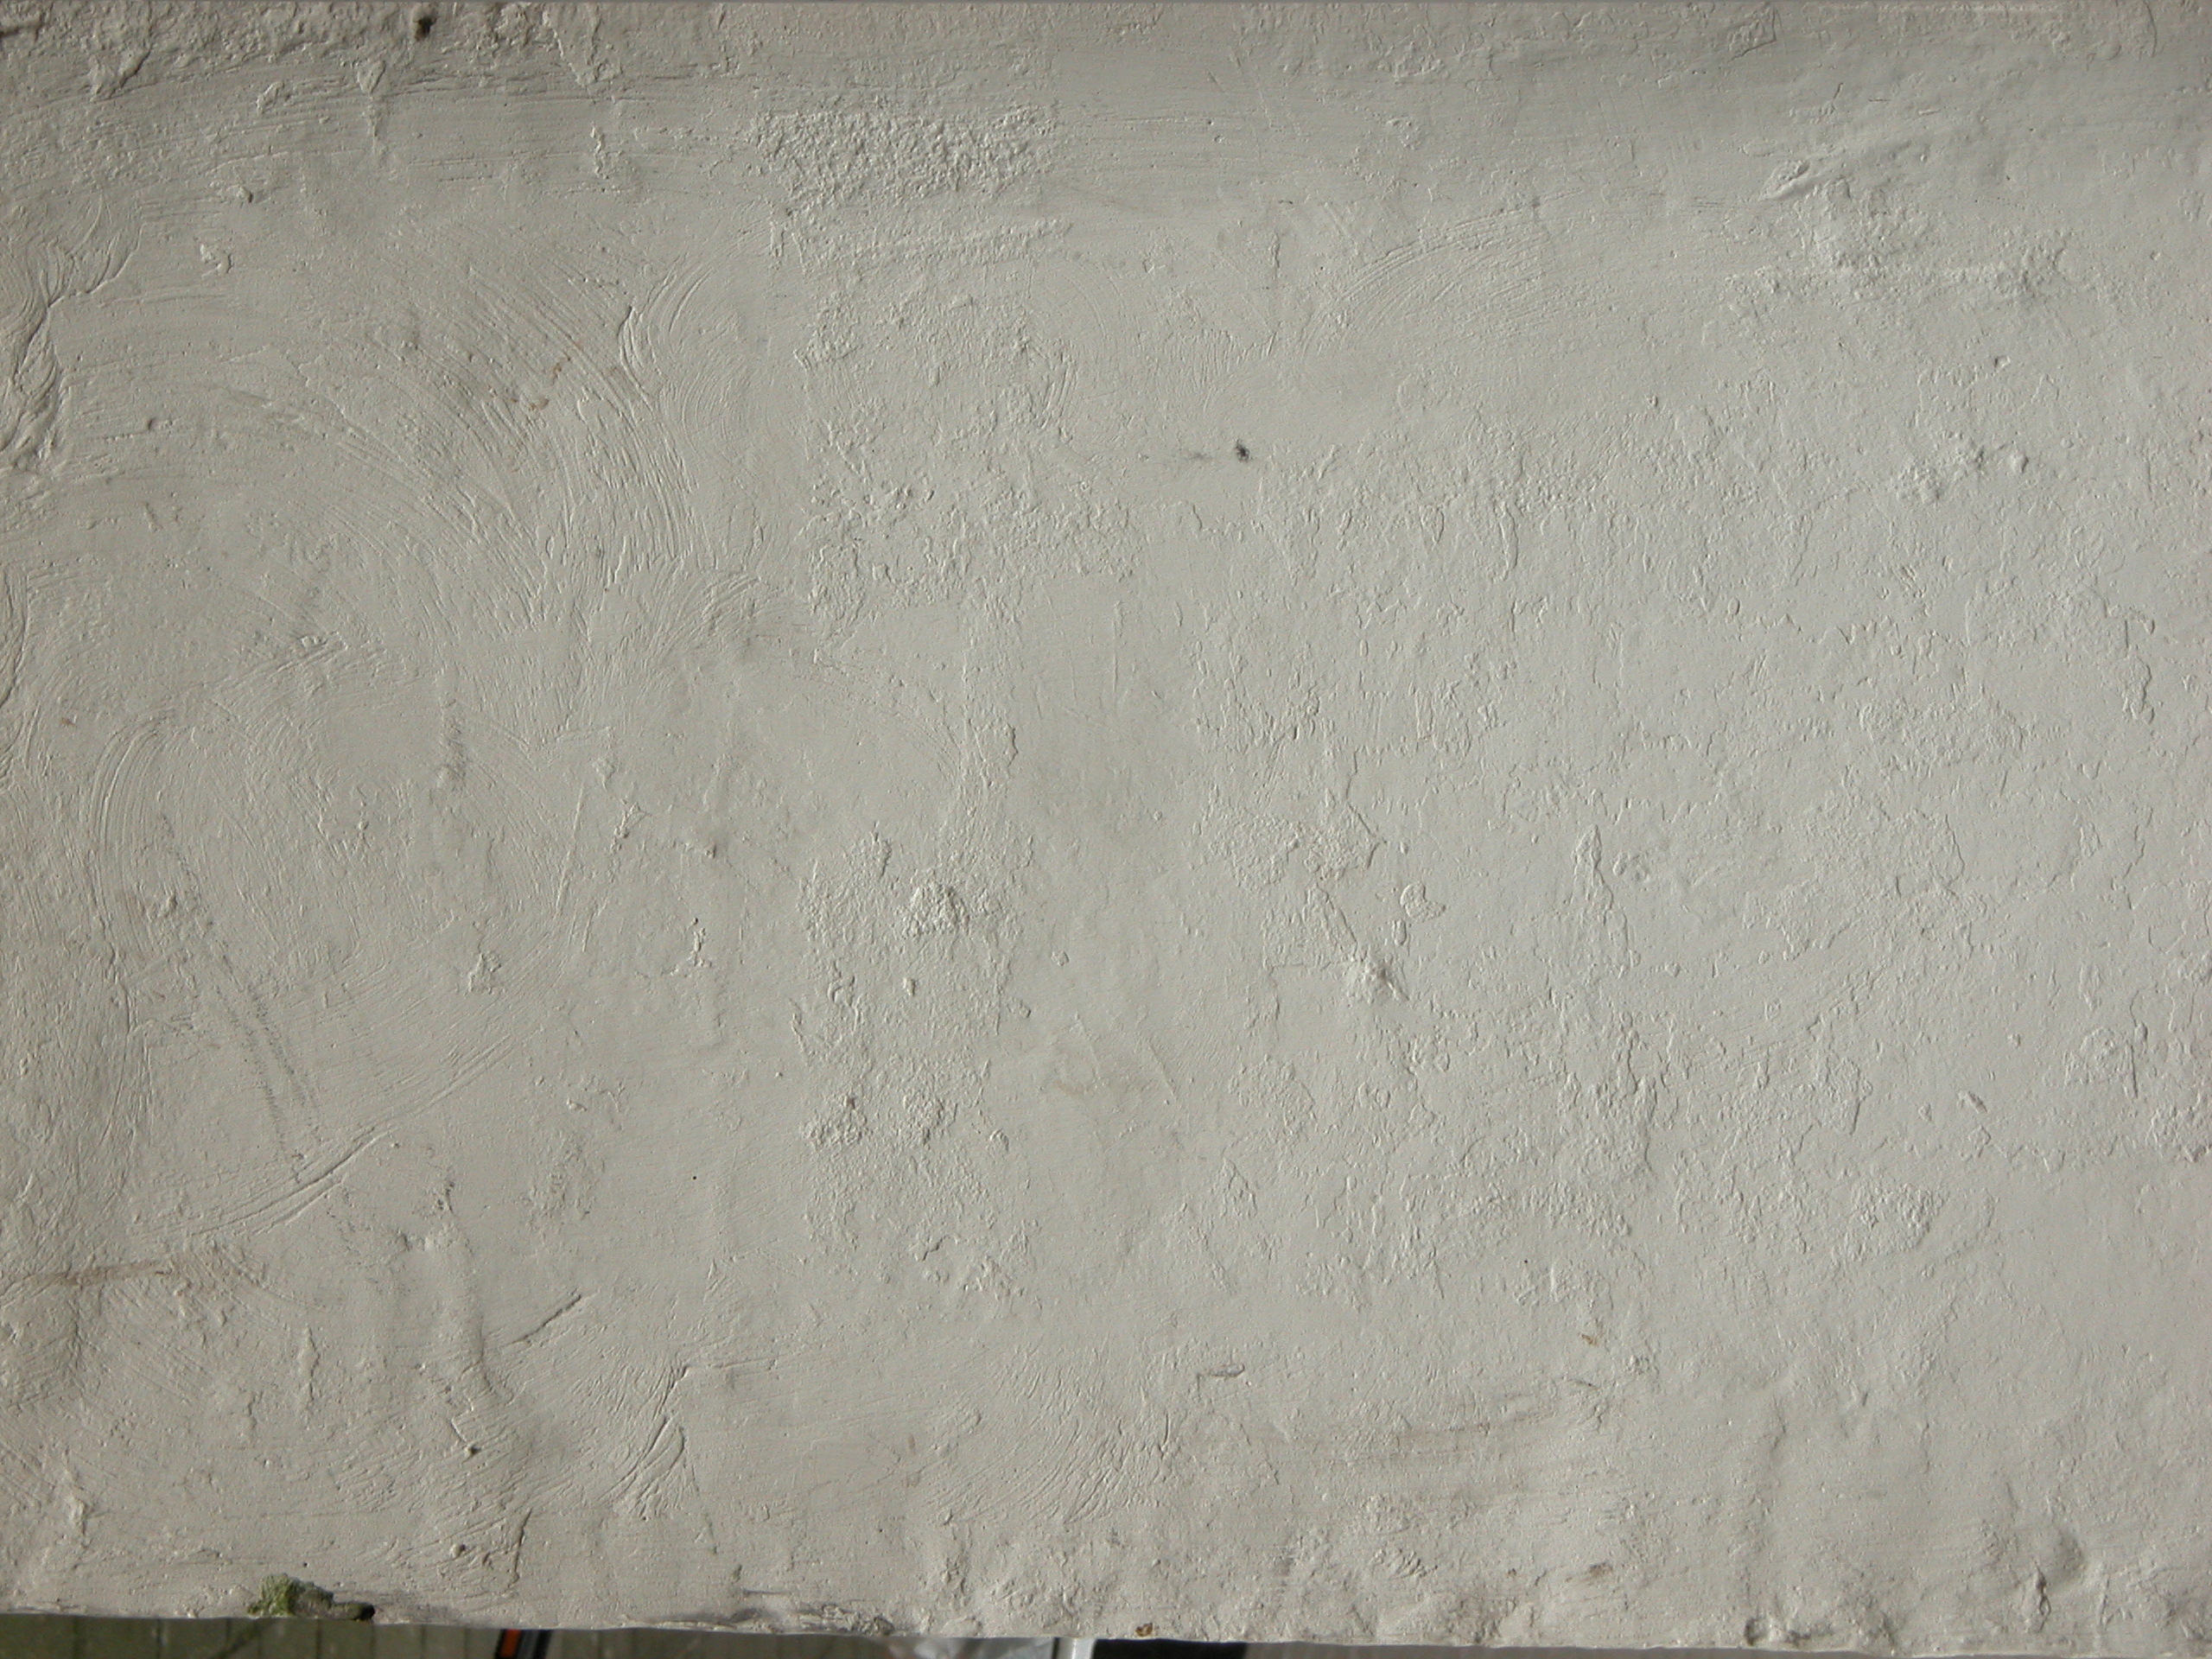 image after photos white painted wall plaster smooth